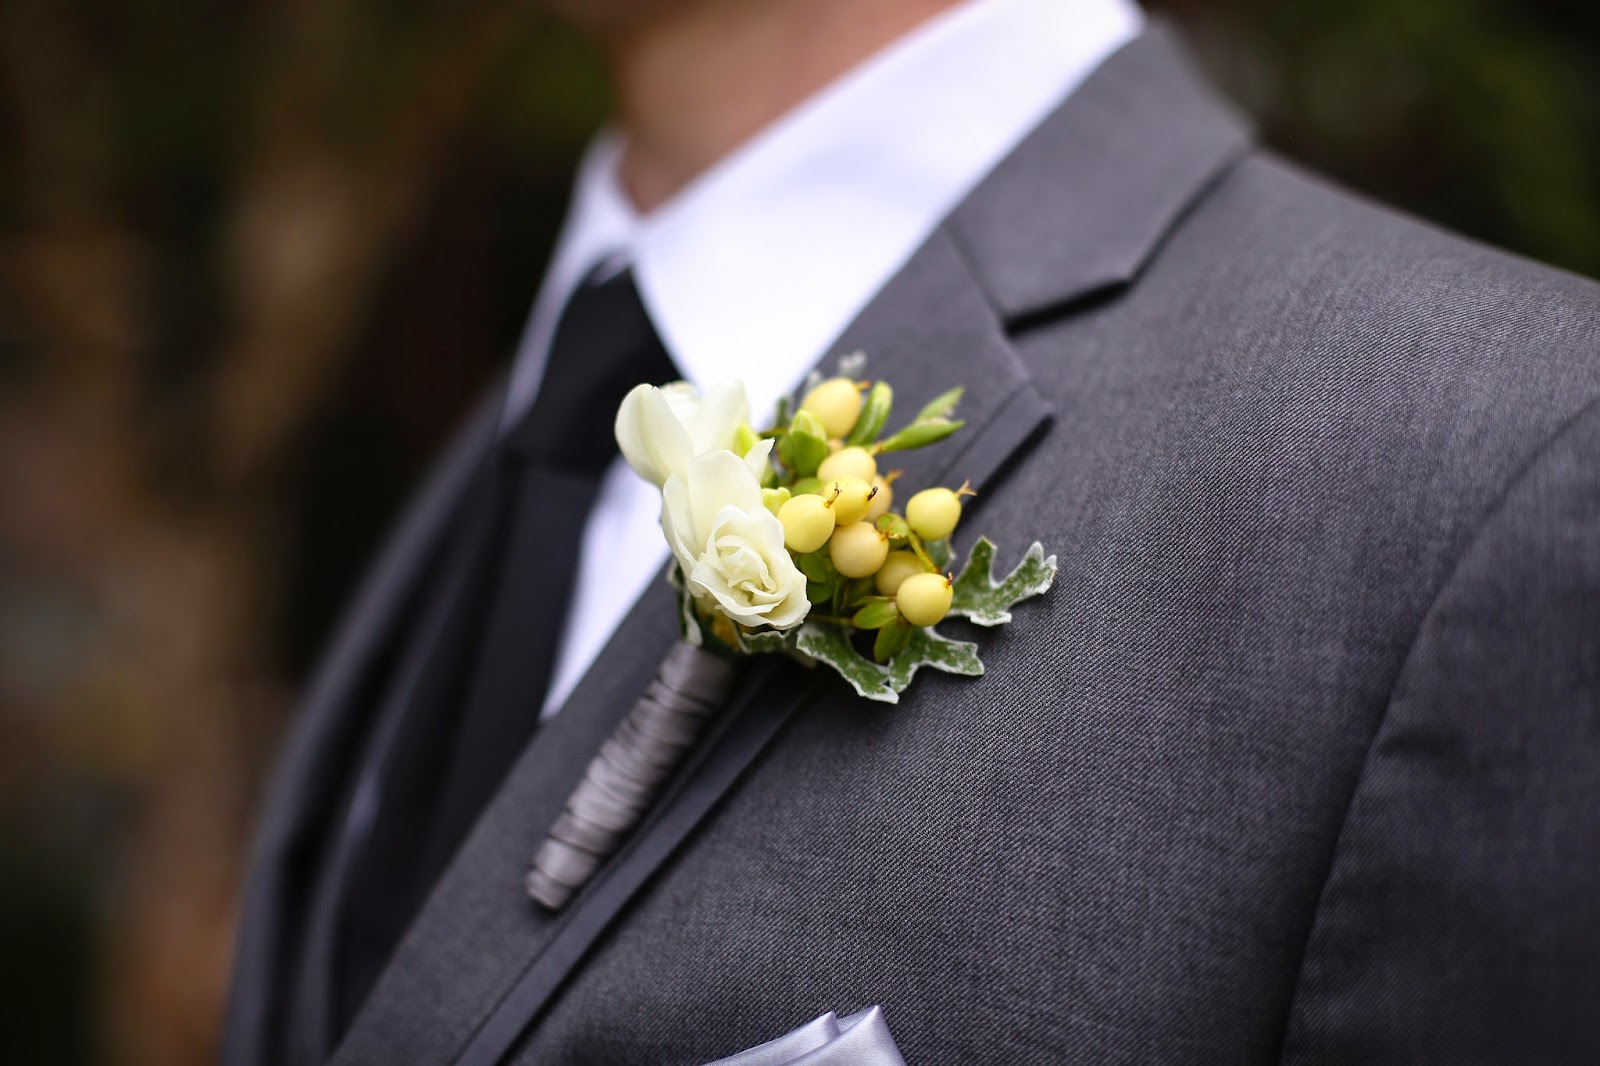 Hypericum Berry Boutonniere - Boutonnieres - Wedding Flowers - Groom - Usher - Best Man - Groomsmen - Ushers - Groom's Boutonniere